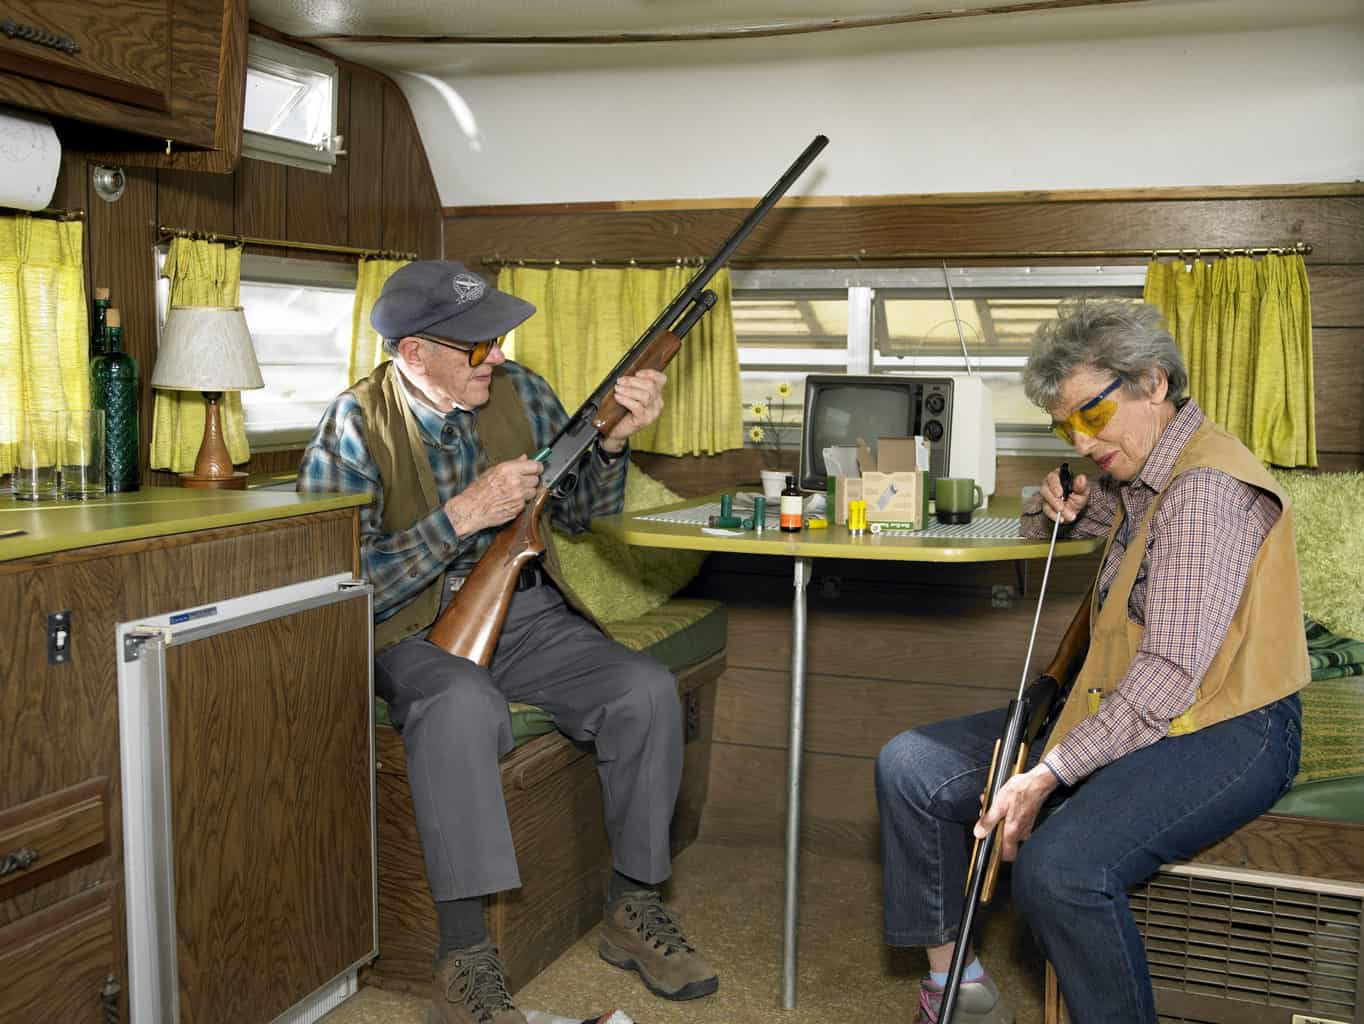 An elderly couple cleaning their rifles